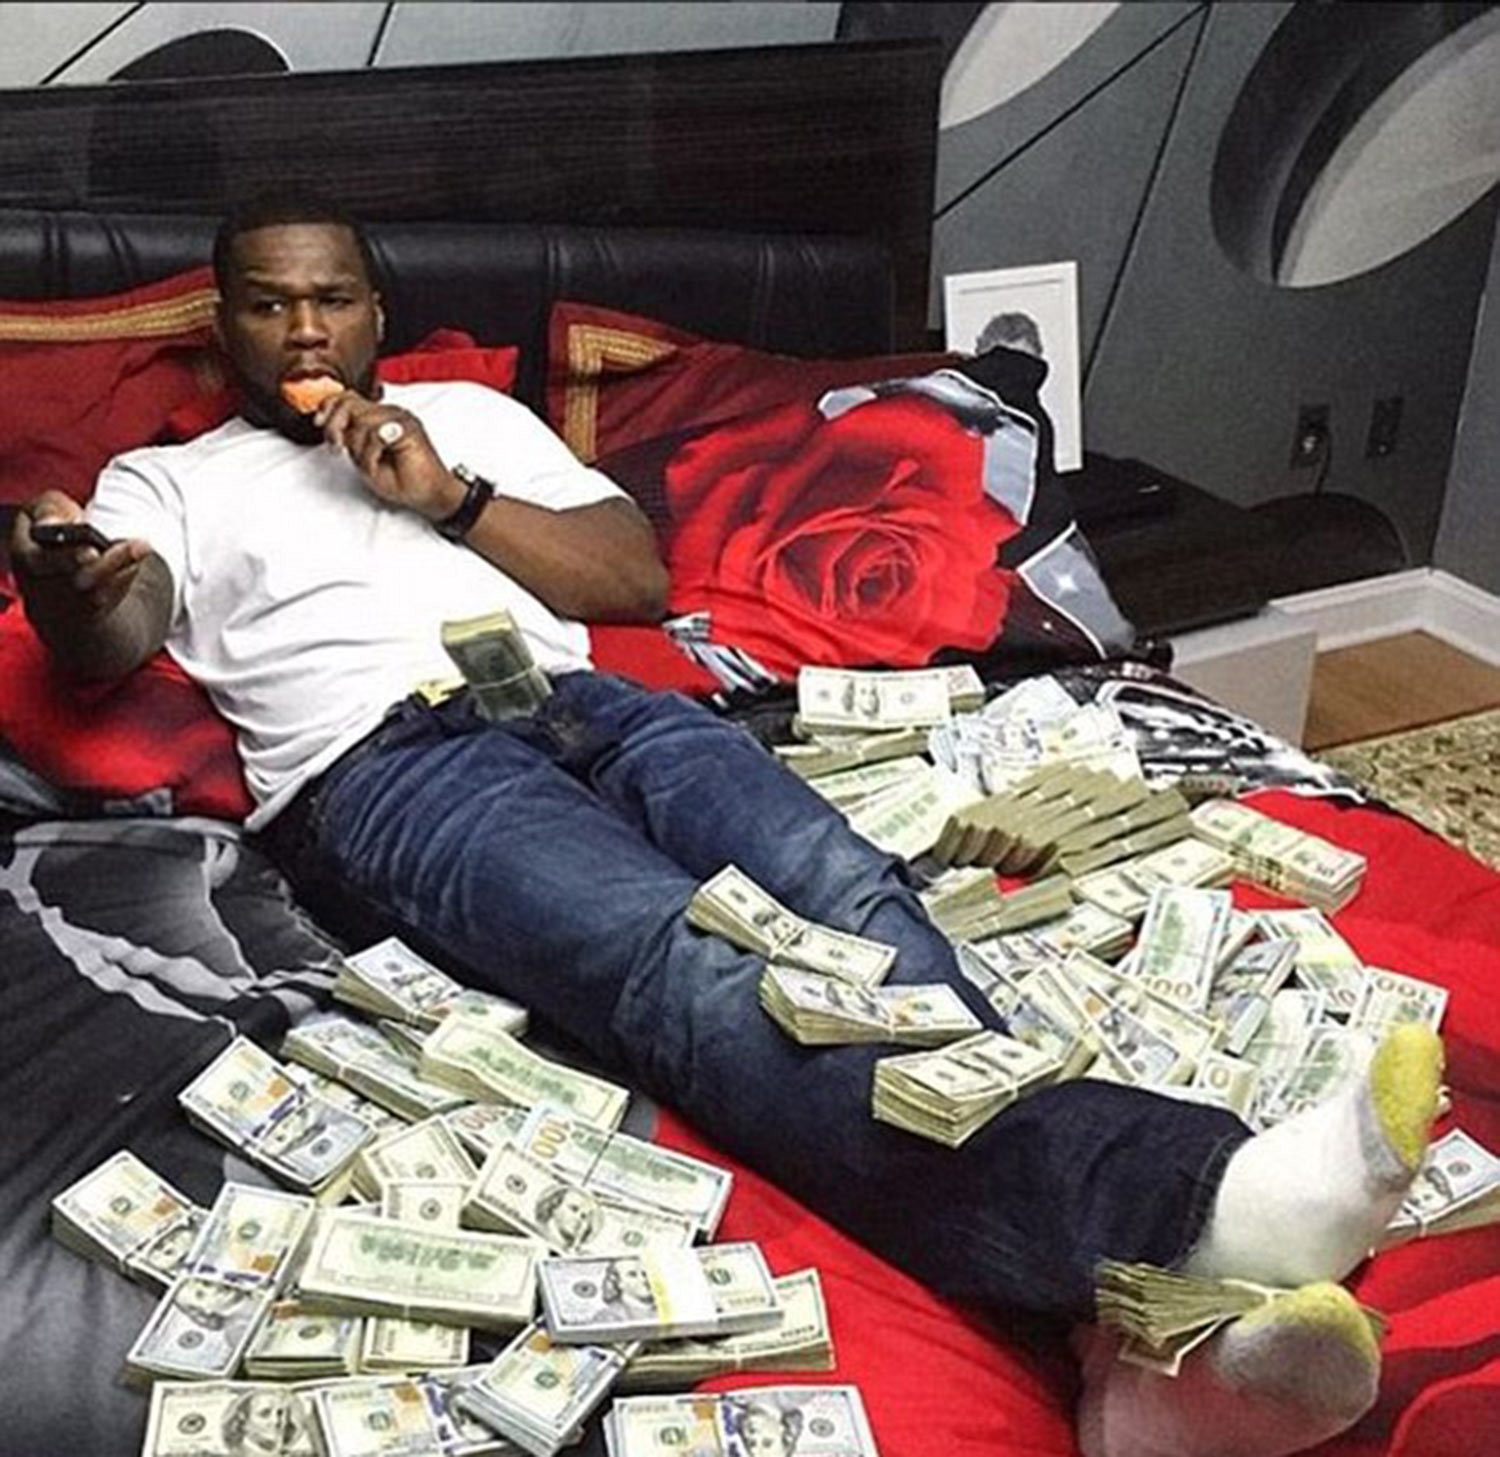 Instagram rich guys who shamelessly spend their and parental money